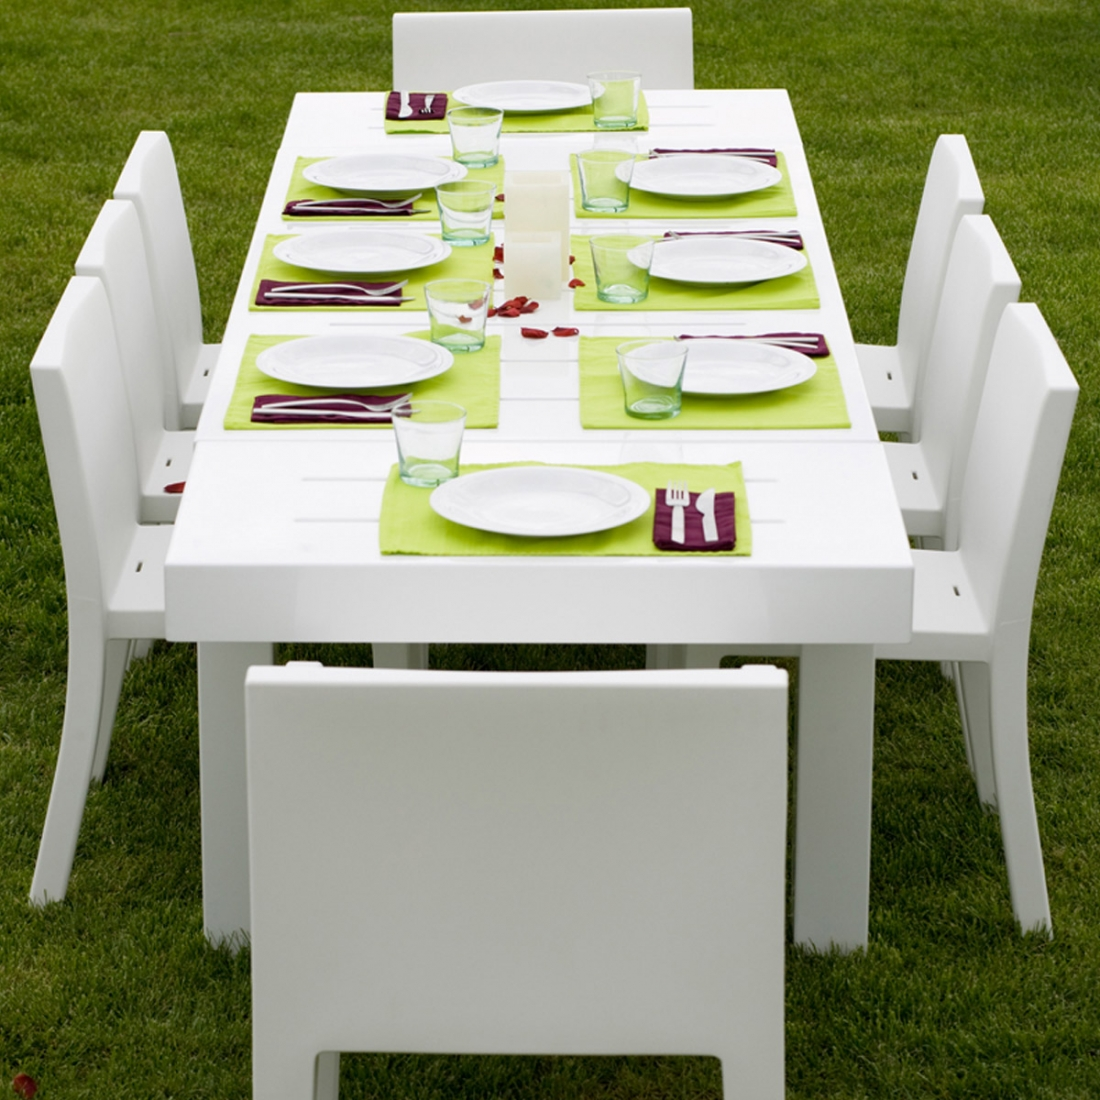 table de jardin design 10 personnes jut par vondom On table de jardin design